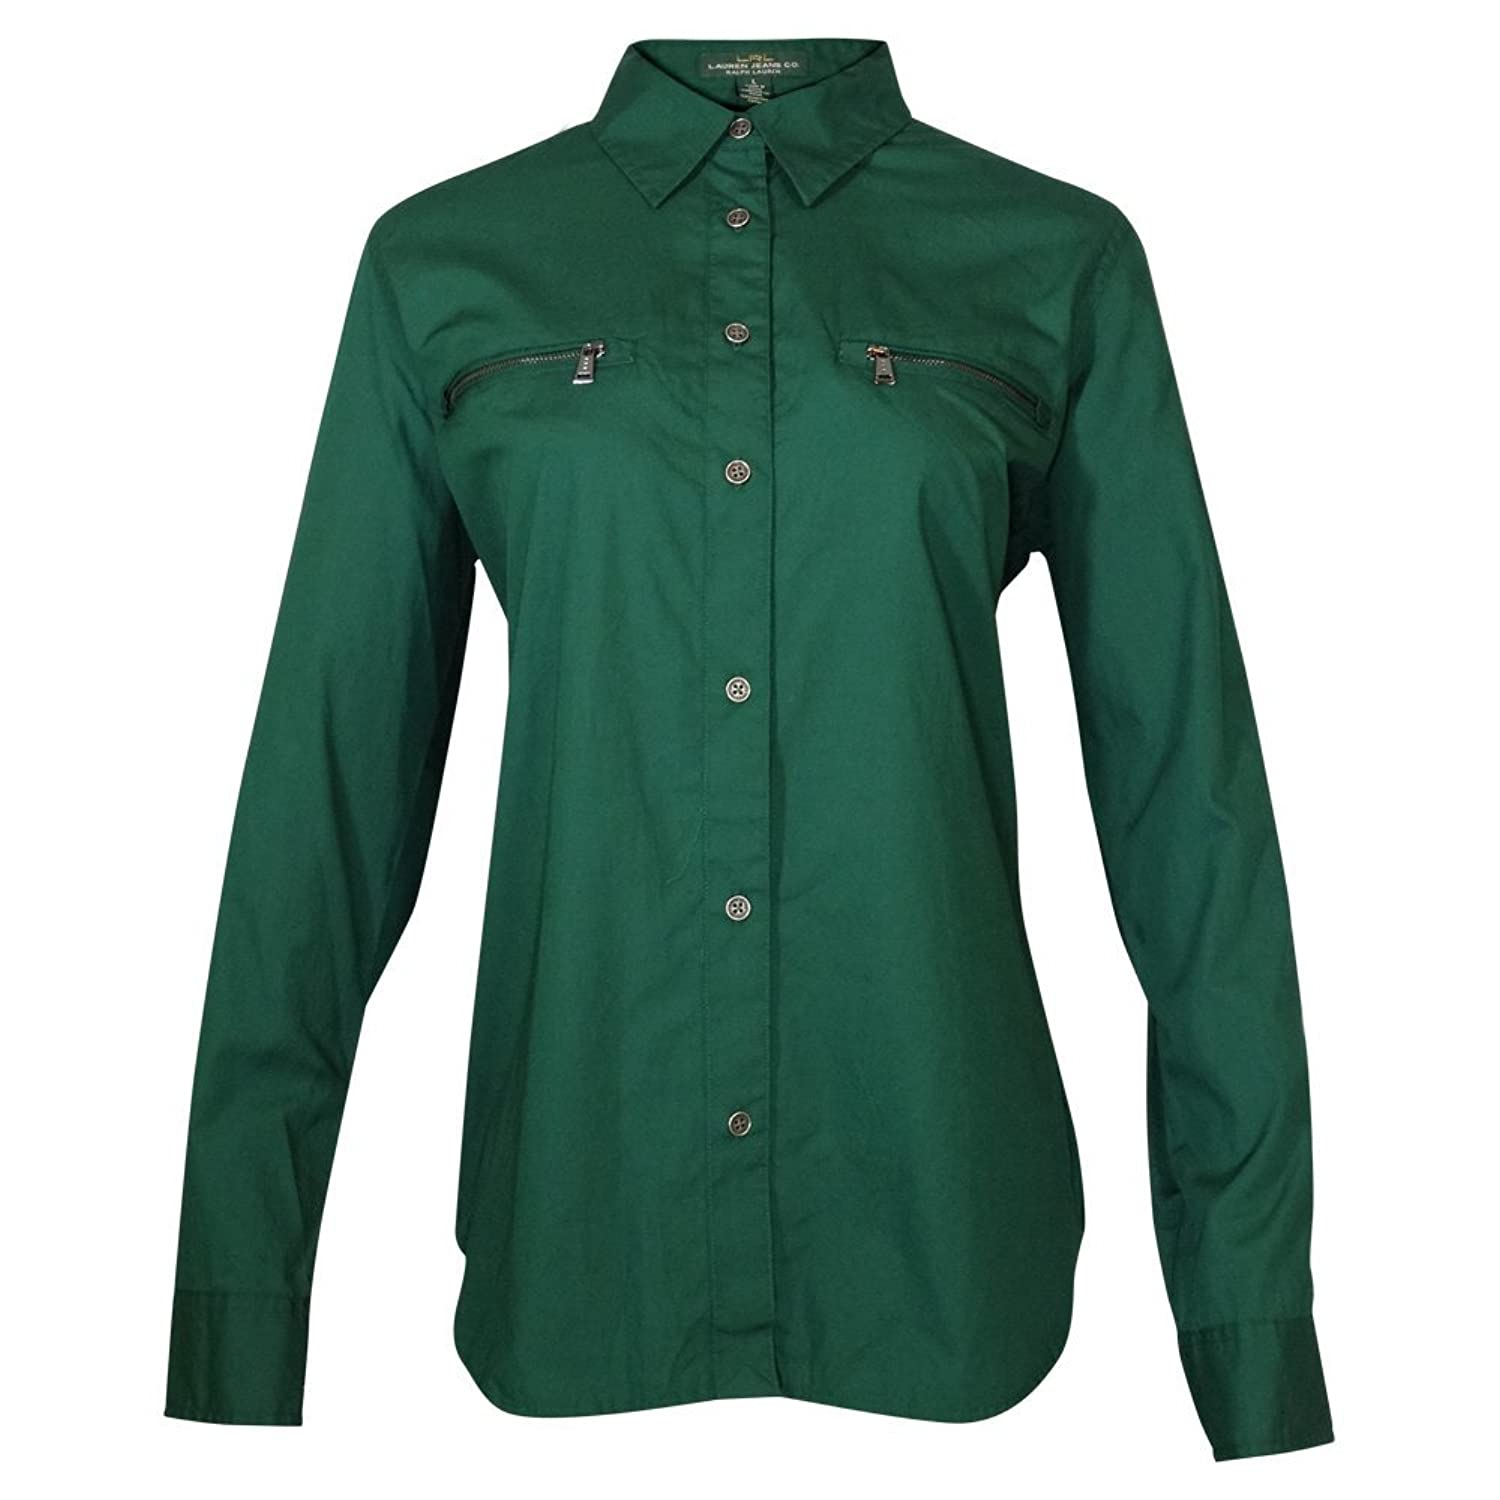 Lauren Jeans Co. Button Down Army Green Shirt (Large)